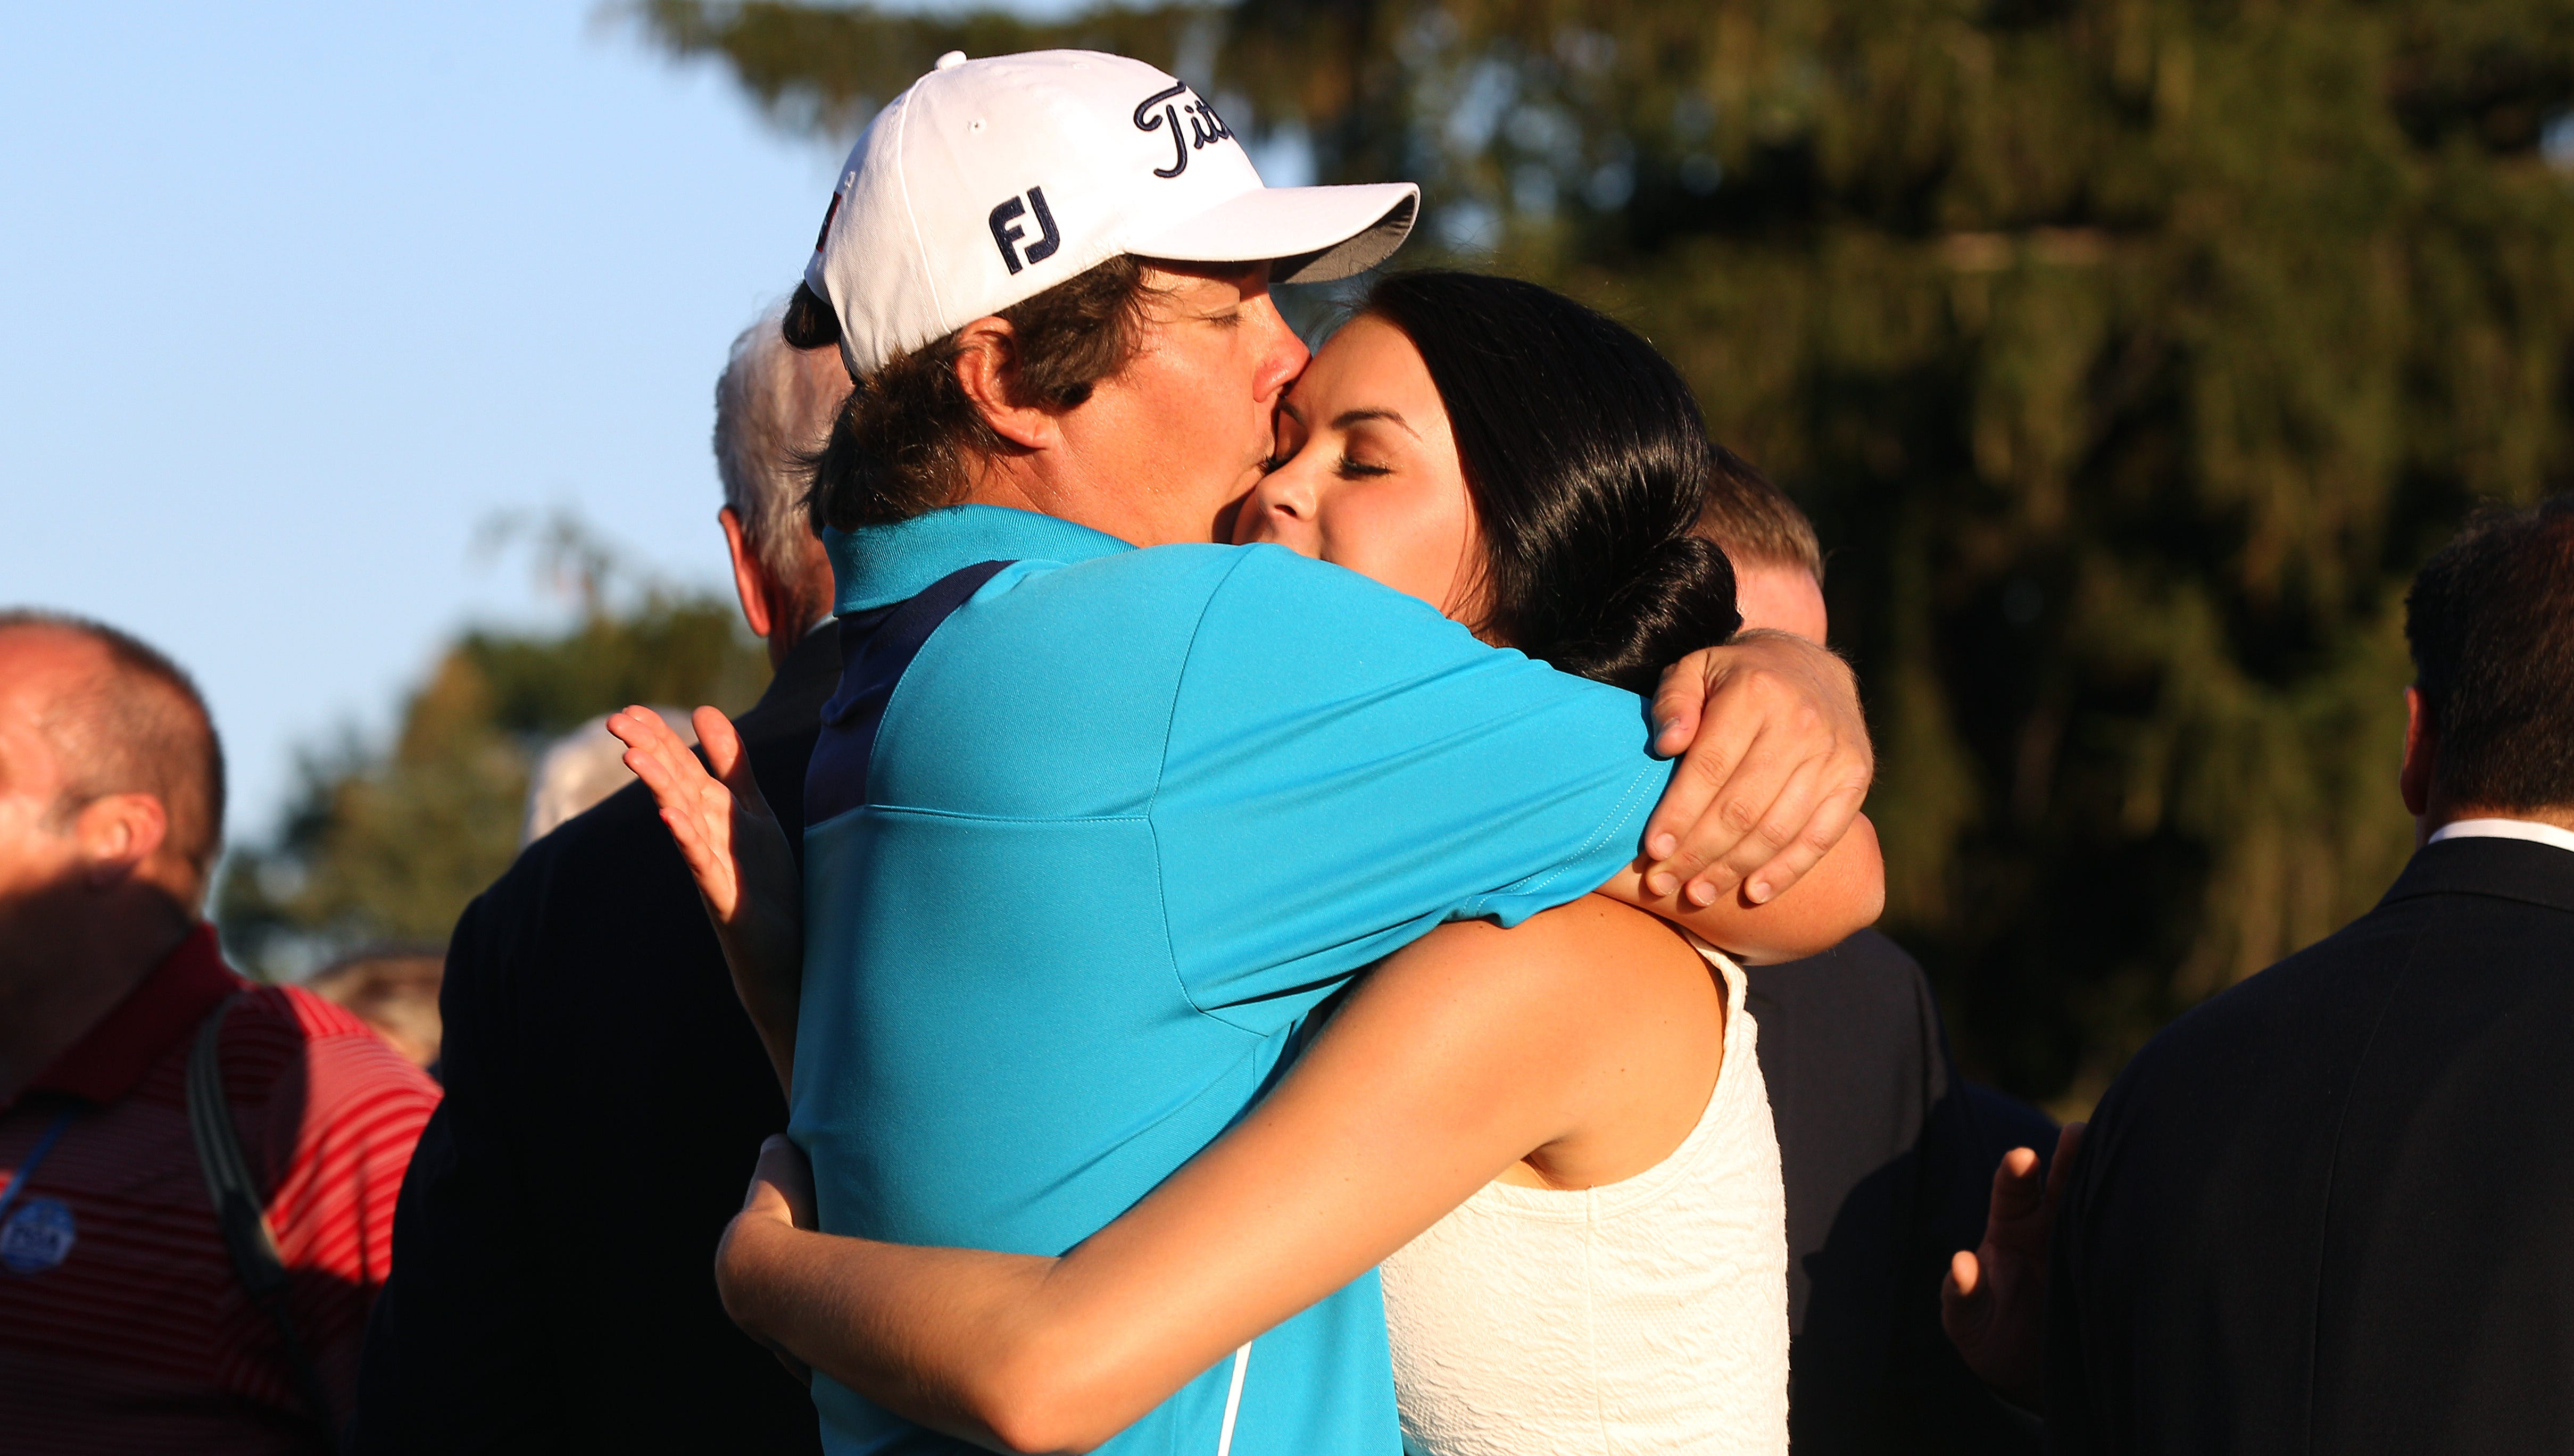 Jason Dufner gets a hug from his wife Amanda after winning the 2013 PGA Championship at Oak Hill Country Club.